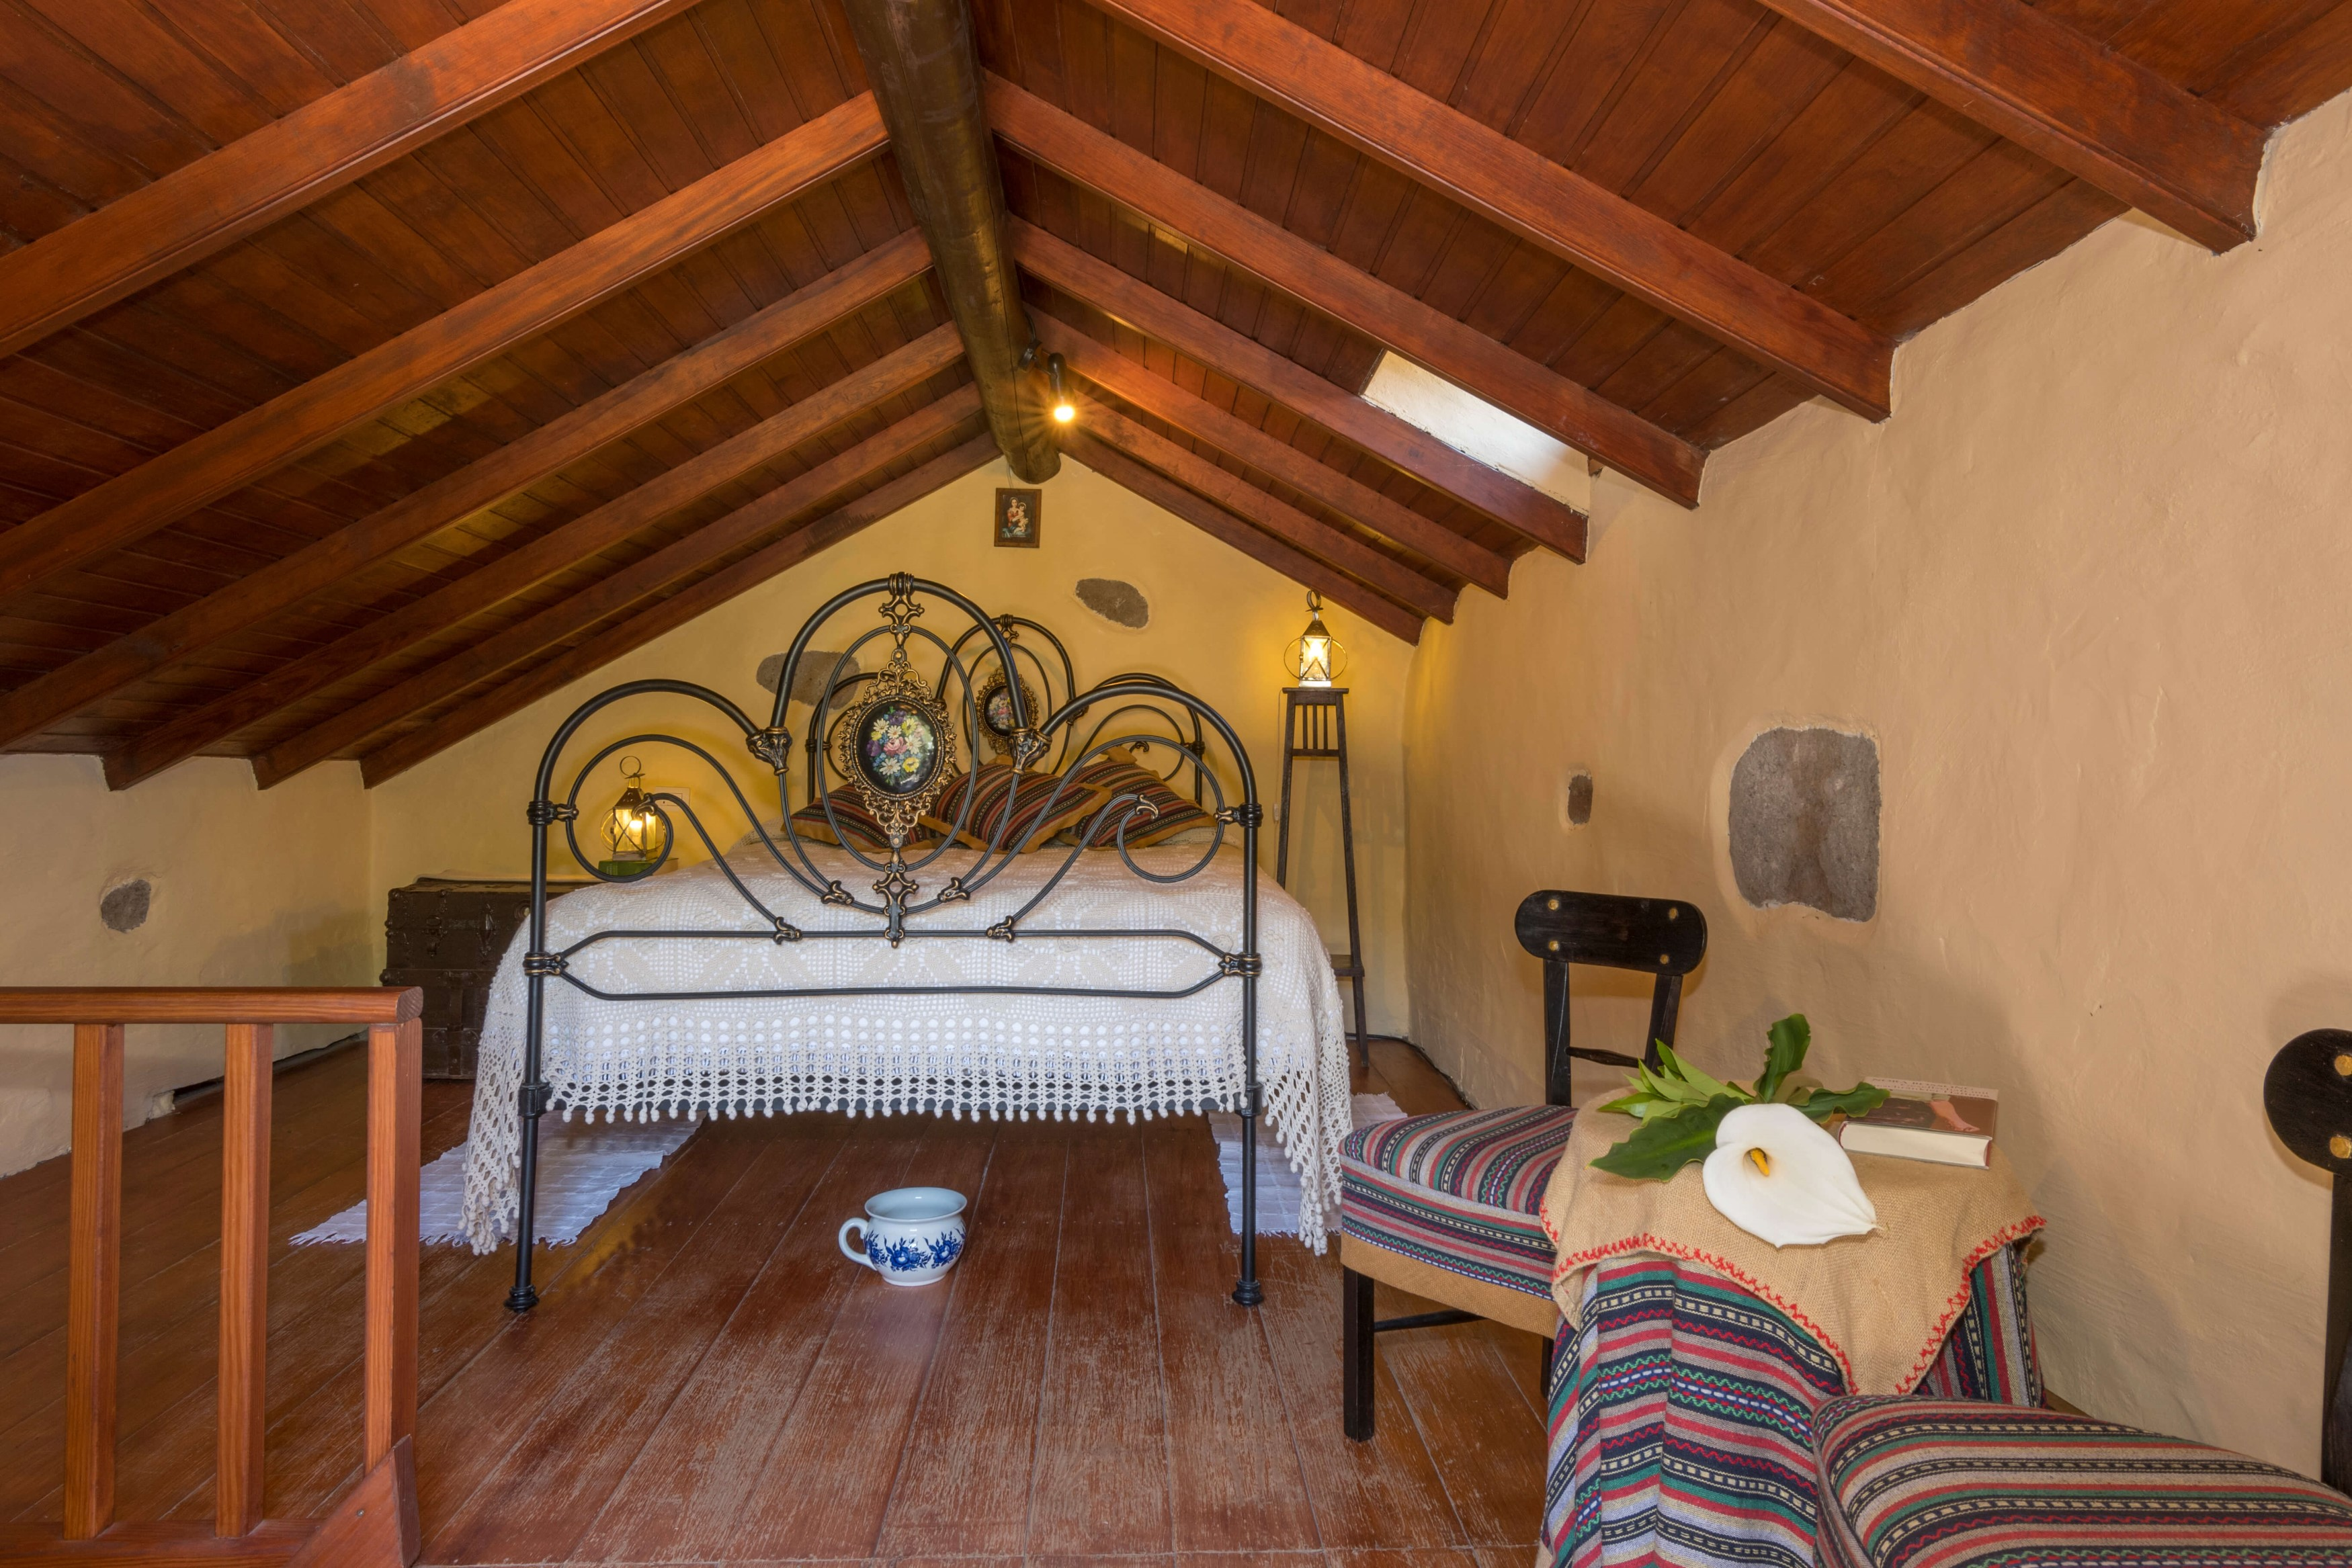 Maison de vacances House - 2 Bedrooms with Pool and WiFi - 106781 (2742990), San Fernando, Grande Canarie, Iles Canaries, Espagne, image 11